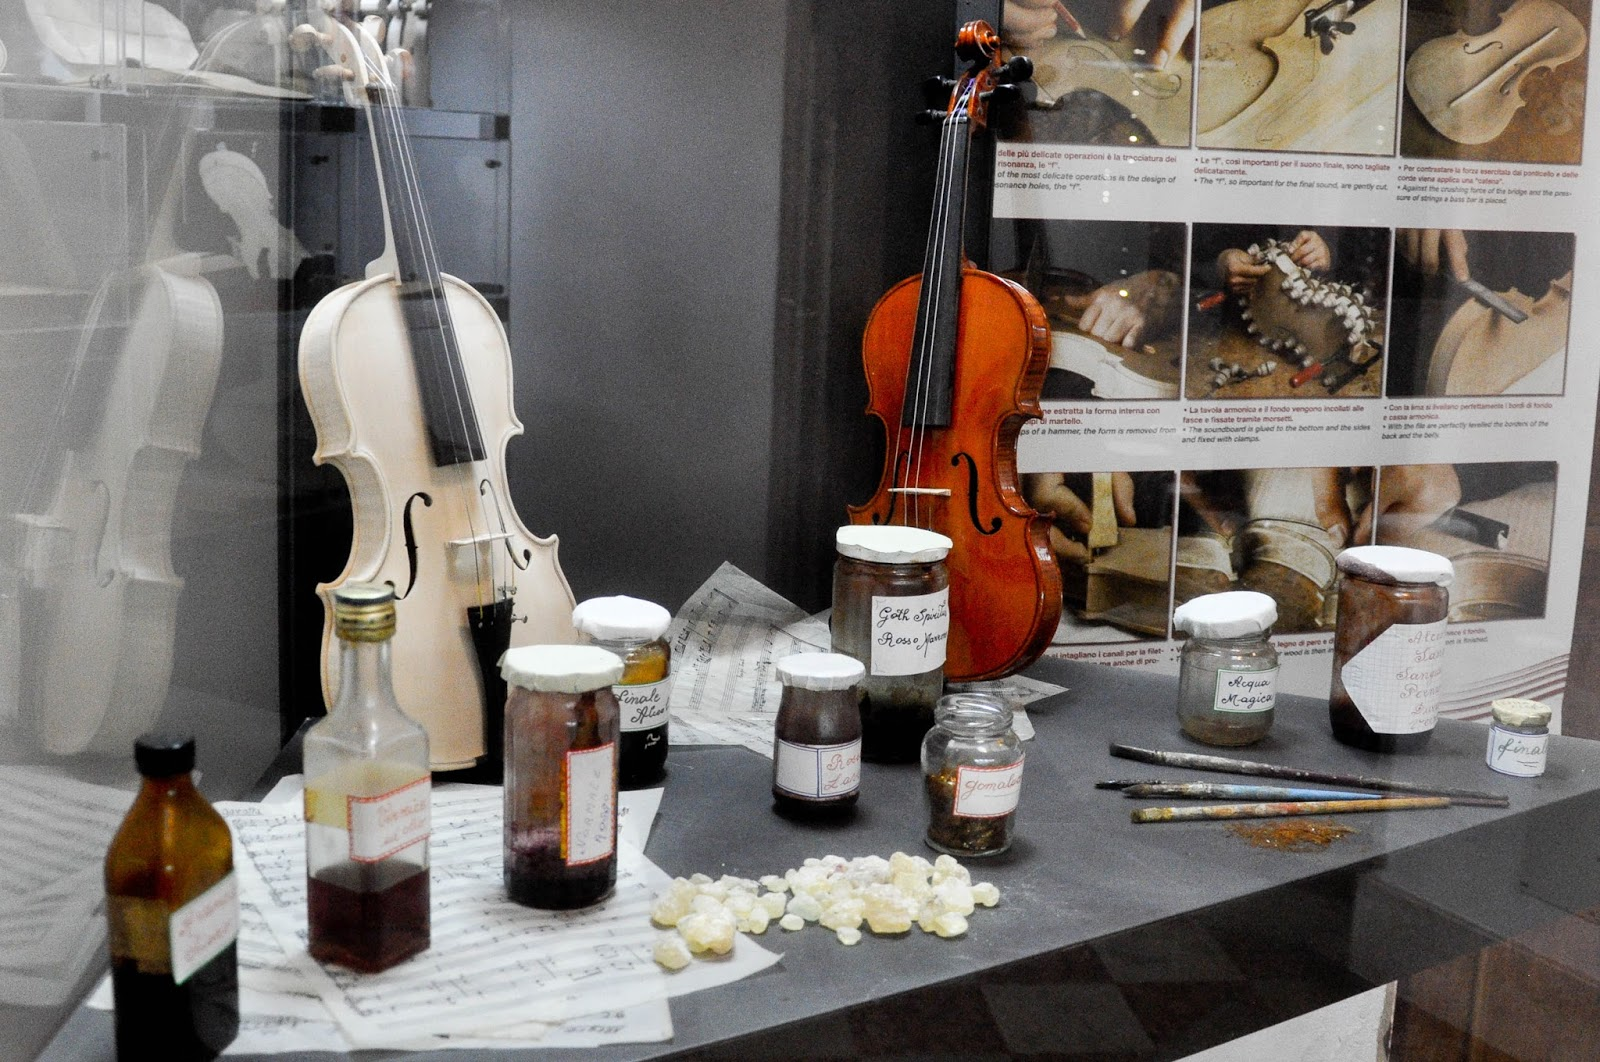 Varnishing the violins, Exhibit case, Museum of the Music, Venice, Italy